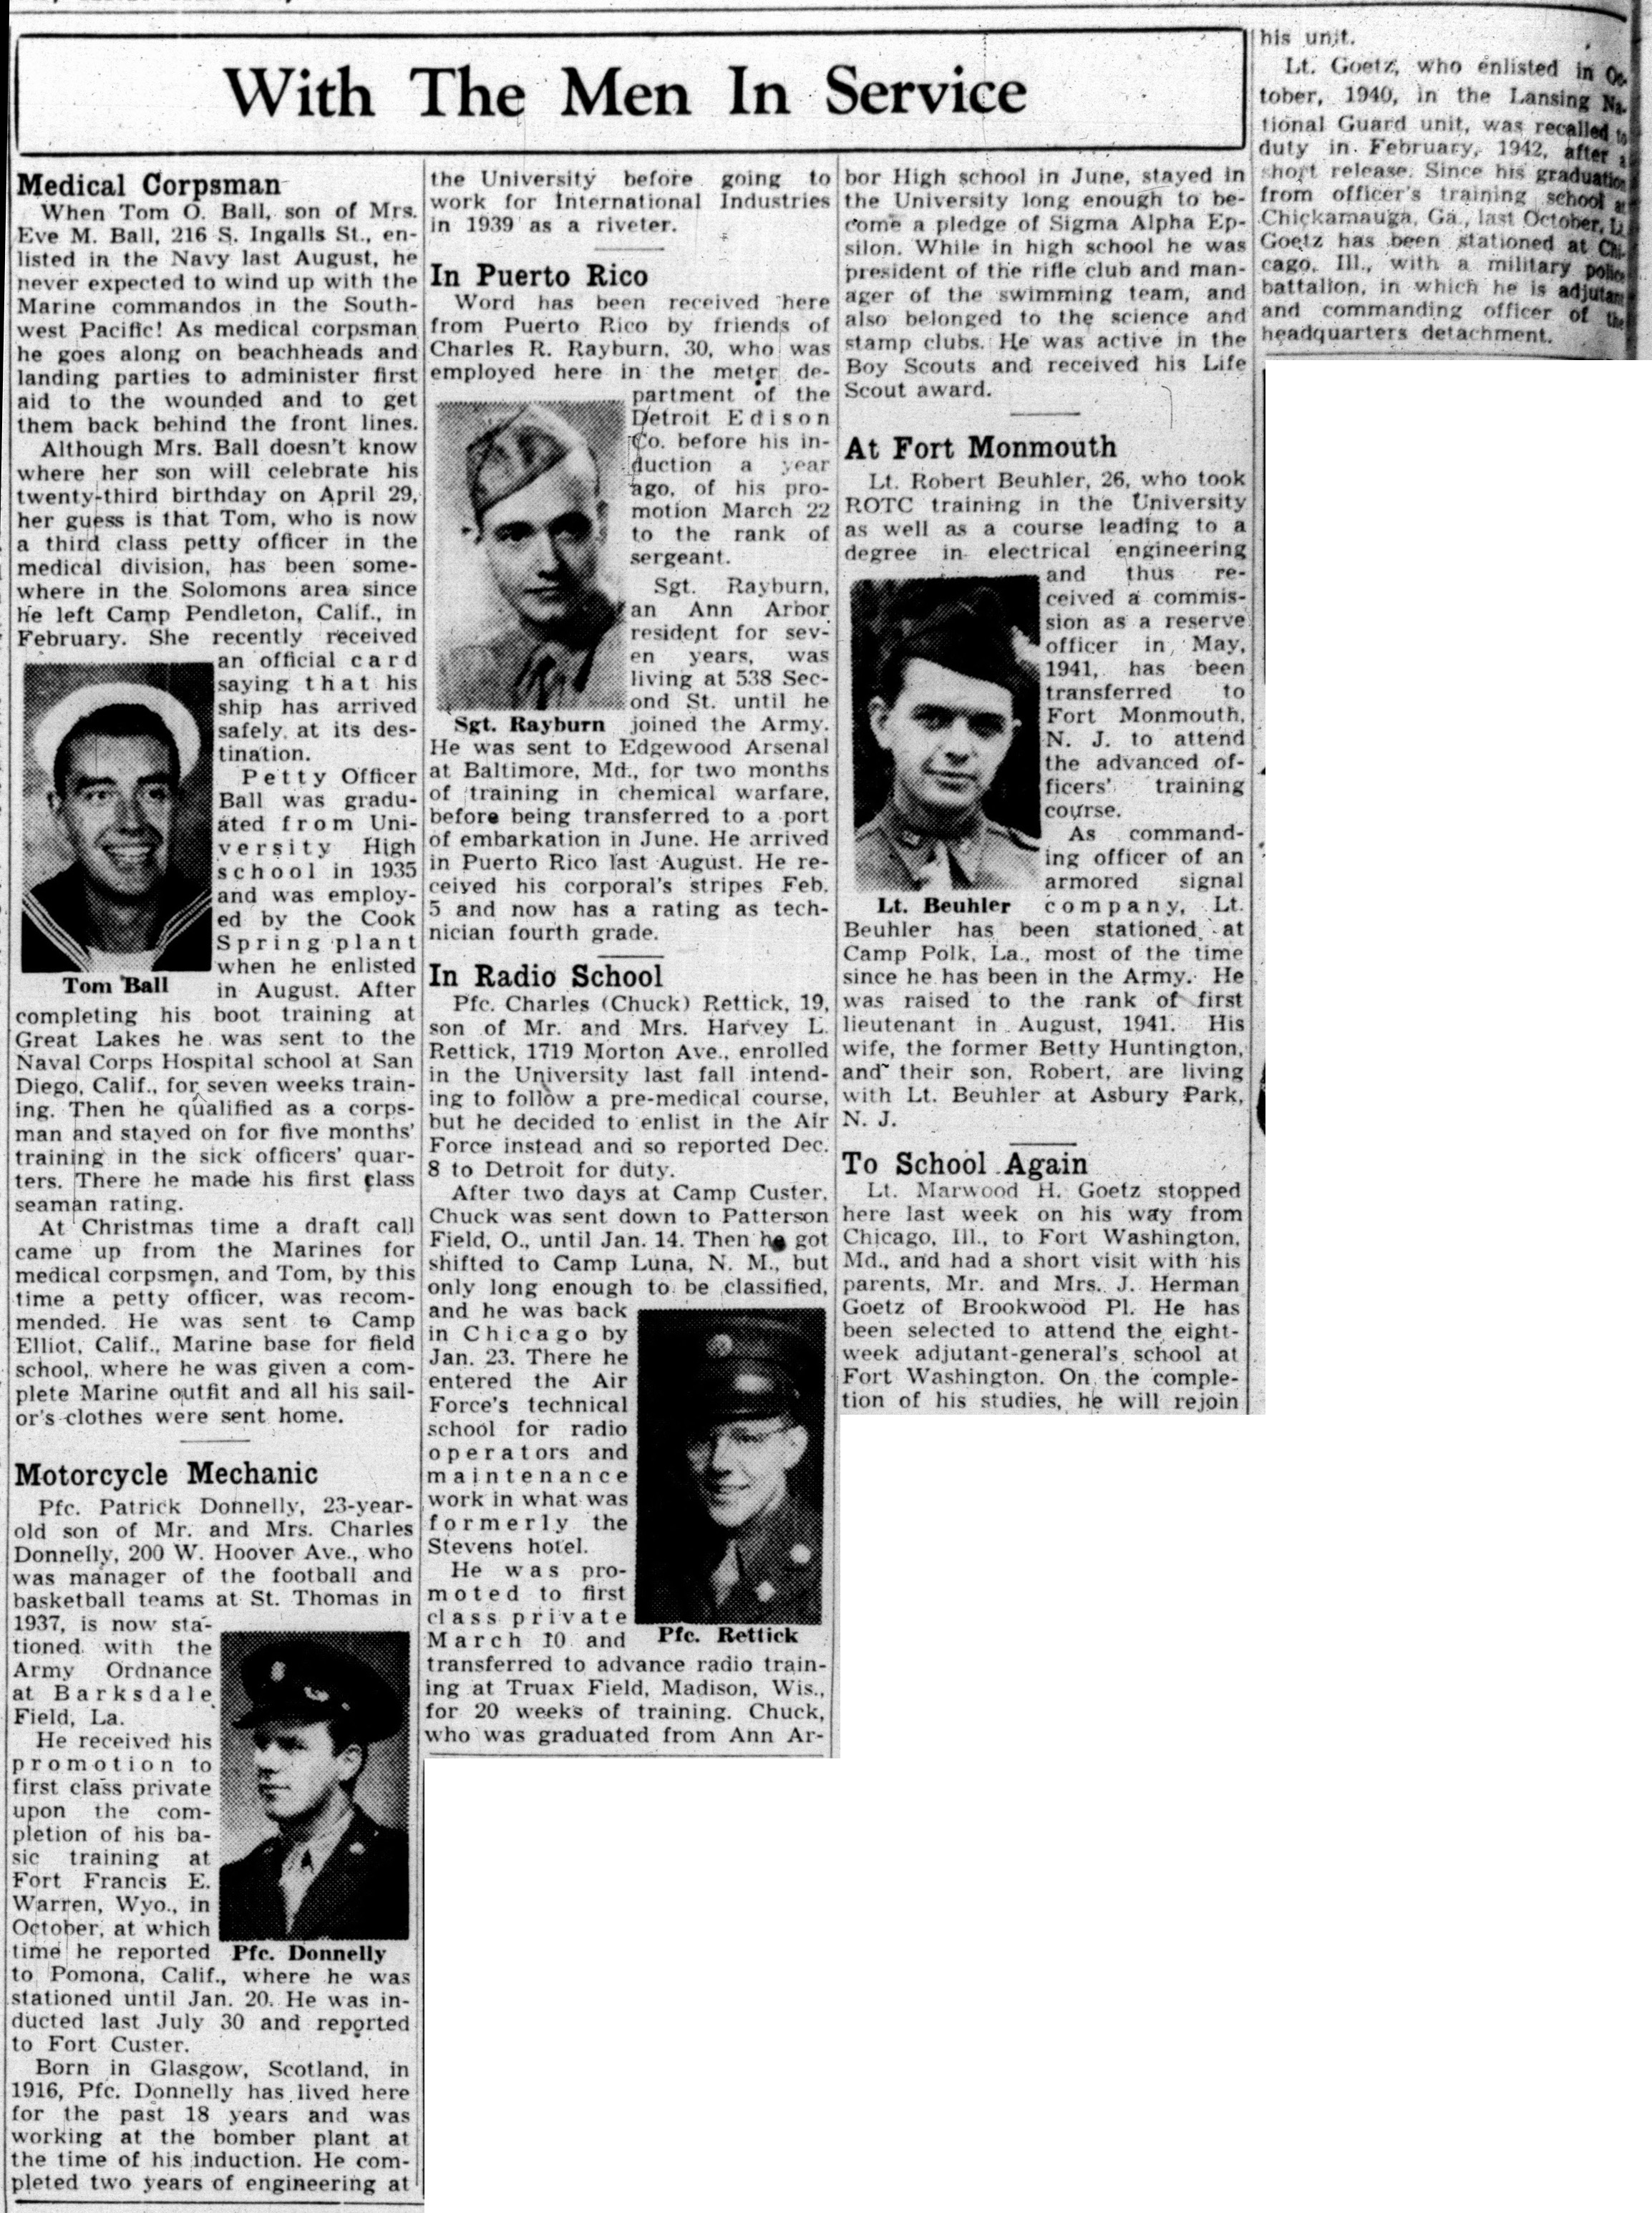 With The Men In Service: April 14, 1943 image